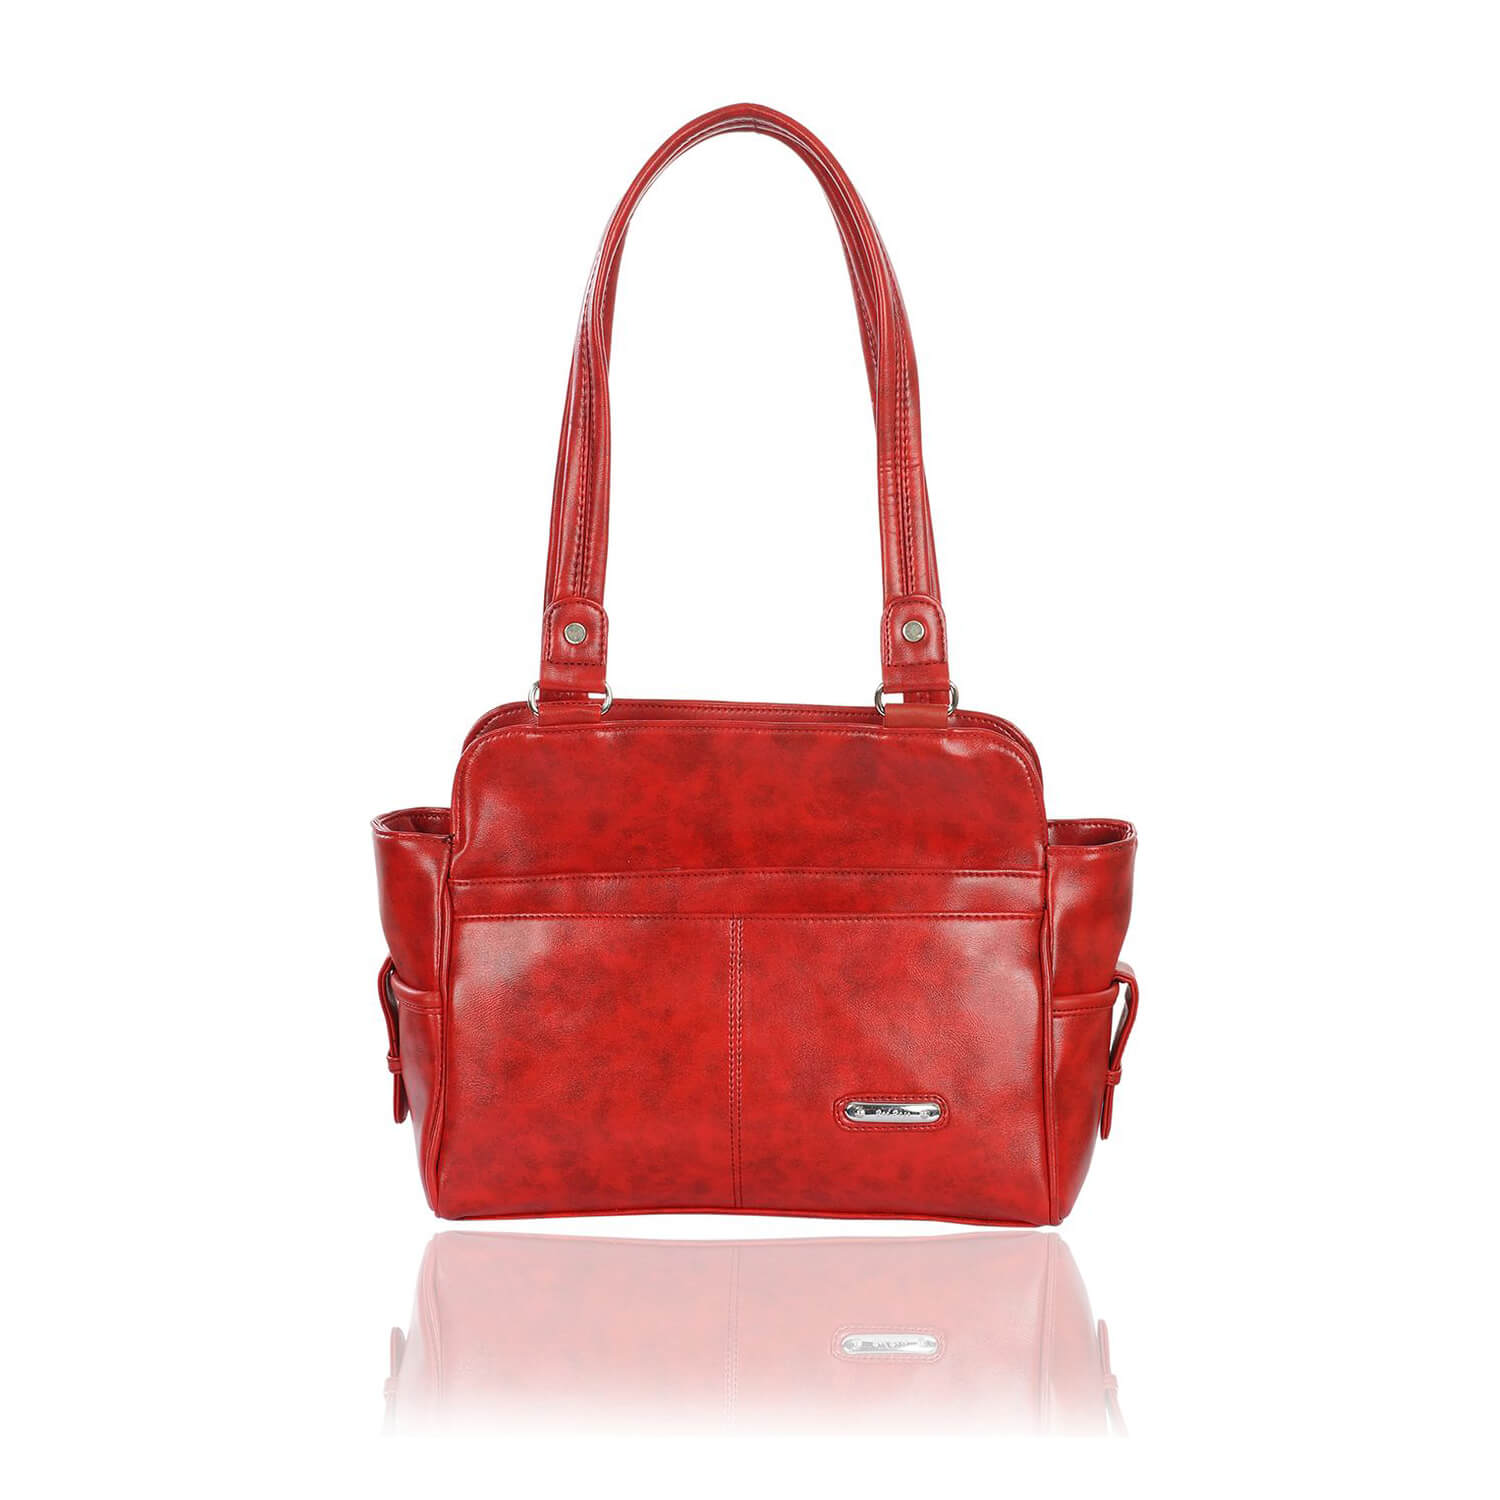 Right Choice RCH273 Red decorous,beautiful handbags for women's